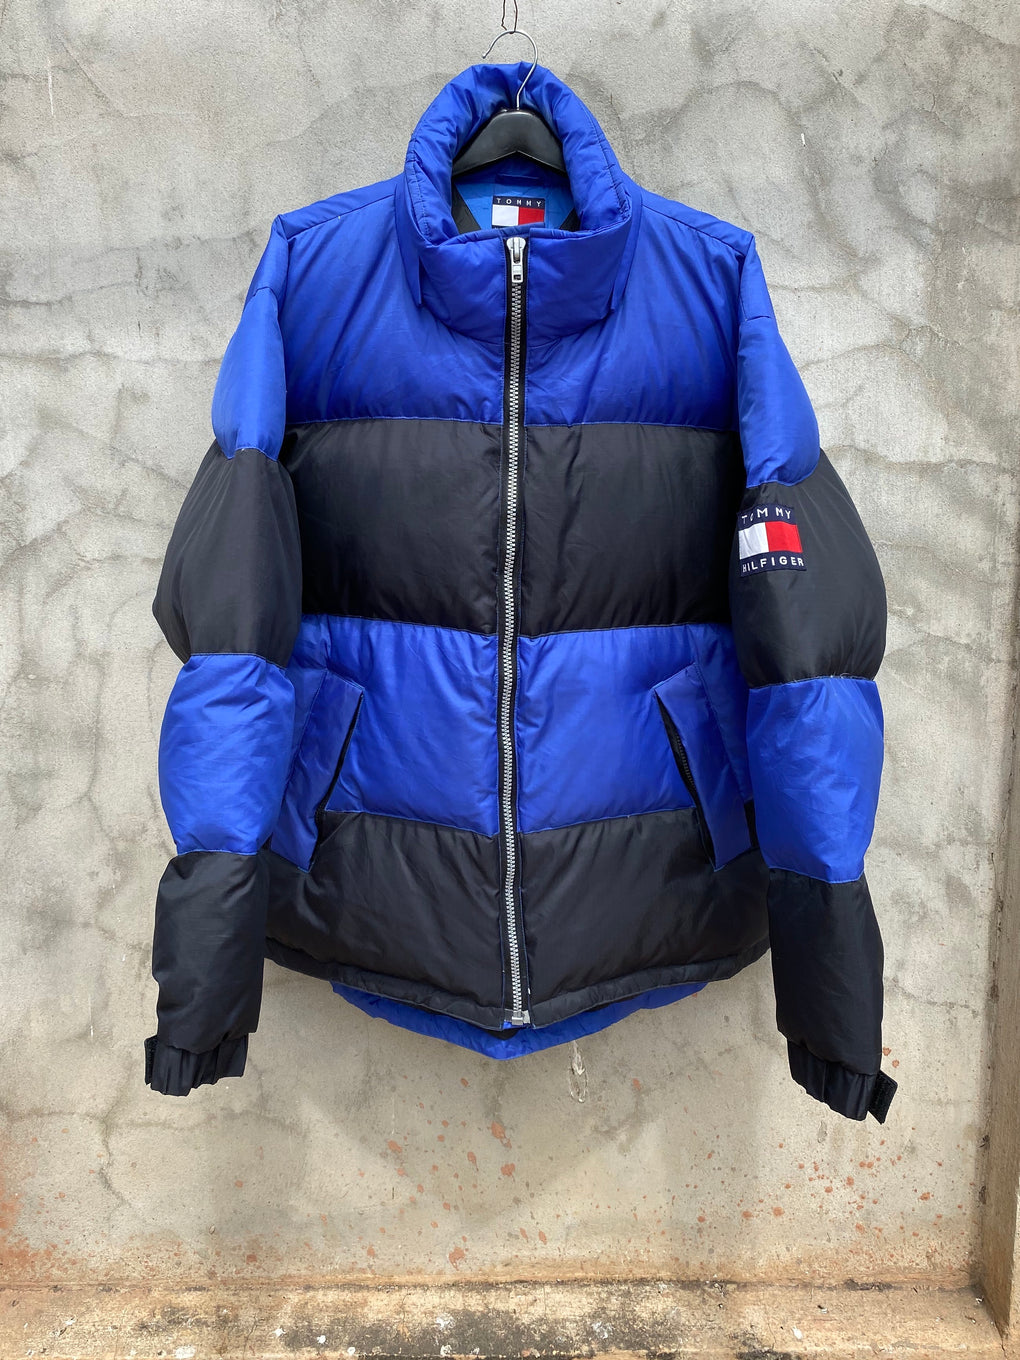 TOMMY HILFIGER PUFFER JACKET - FROTHLYF